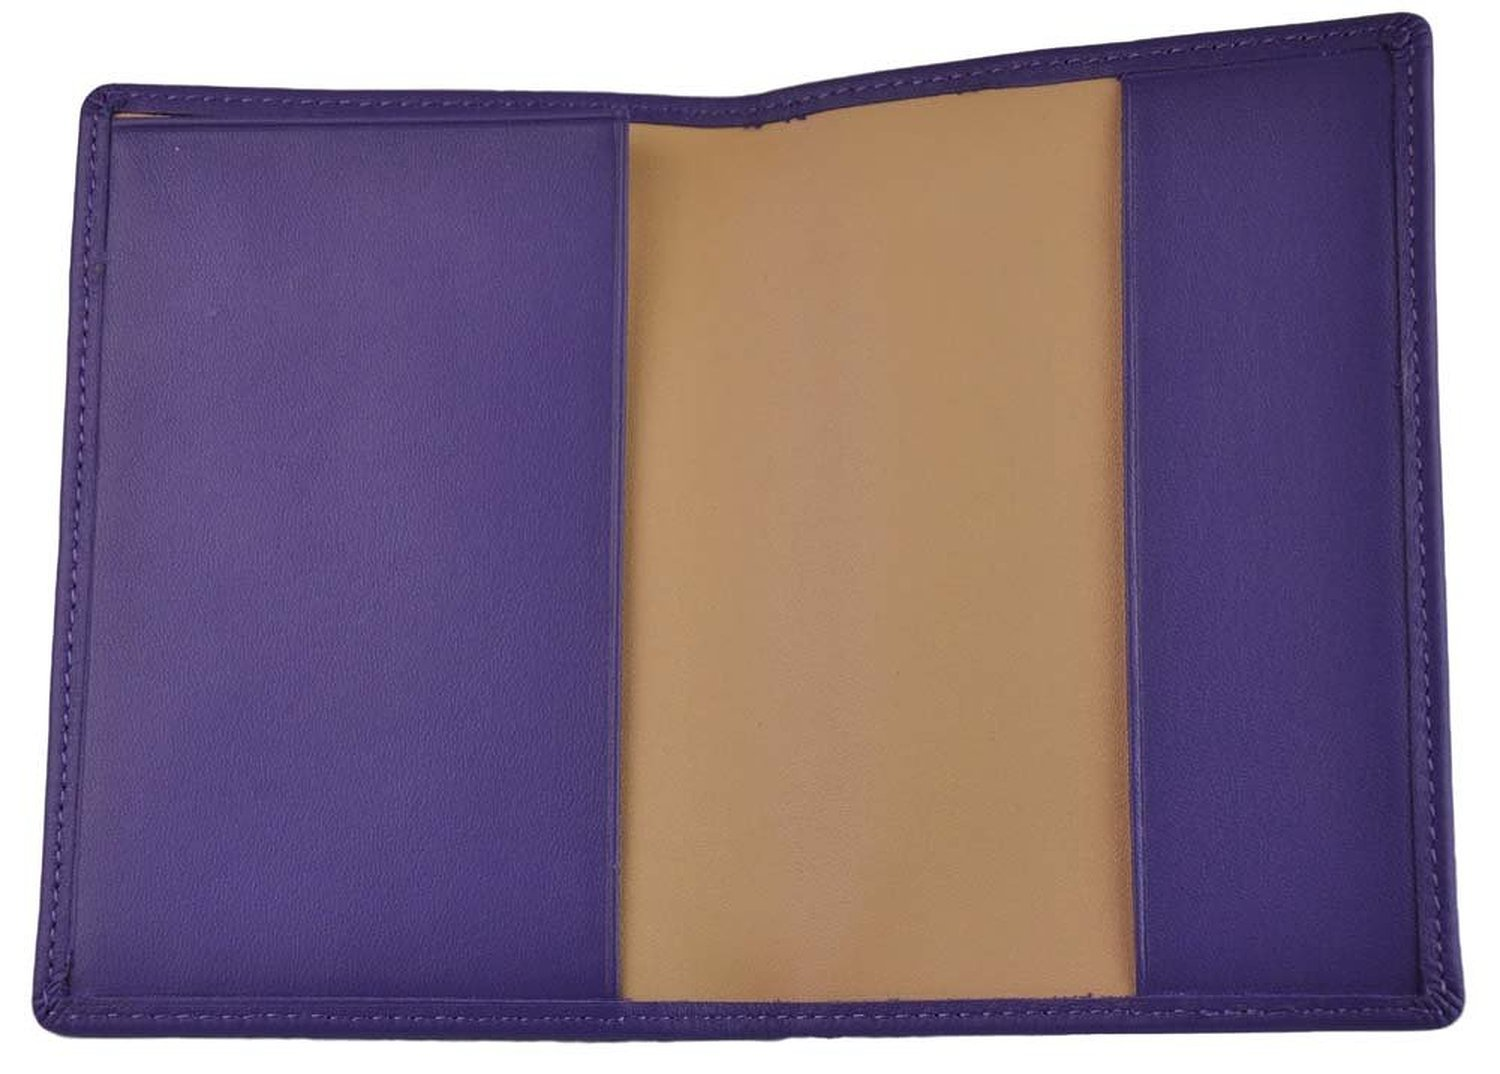 Tan 2 EMPORIUM LEATHER DBA Royce Leather Royce Leather RFID Blocking Passport Travel Document Organizer in Leather RFID-203-TN-5